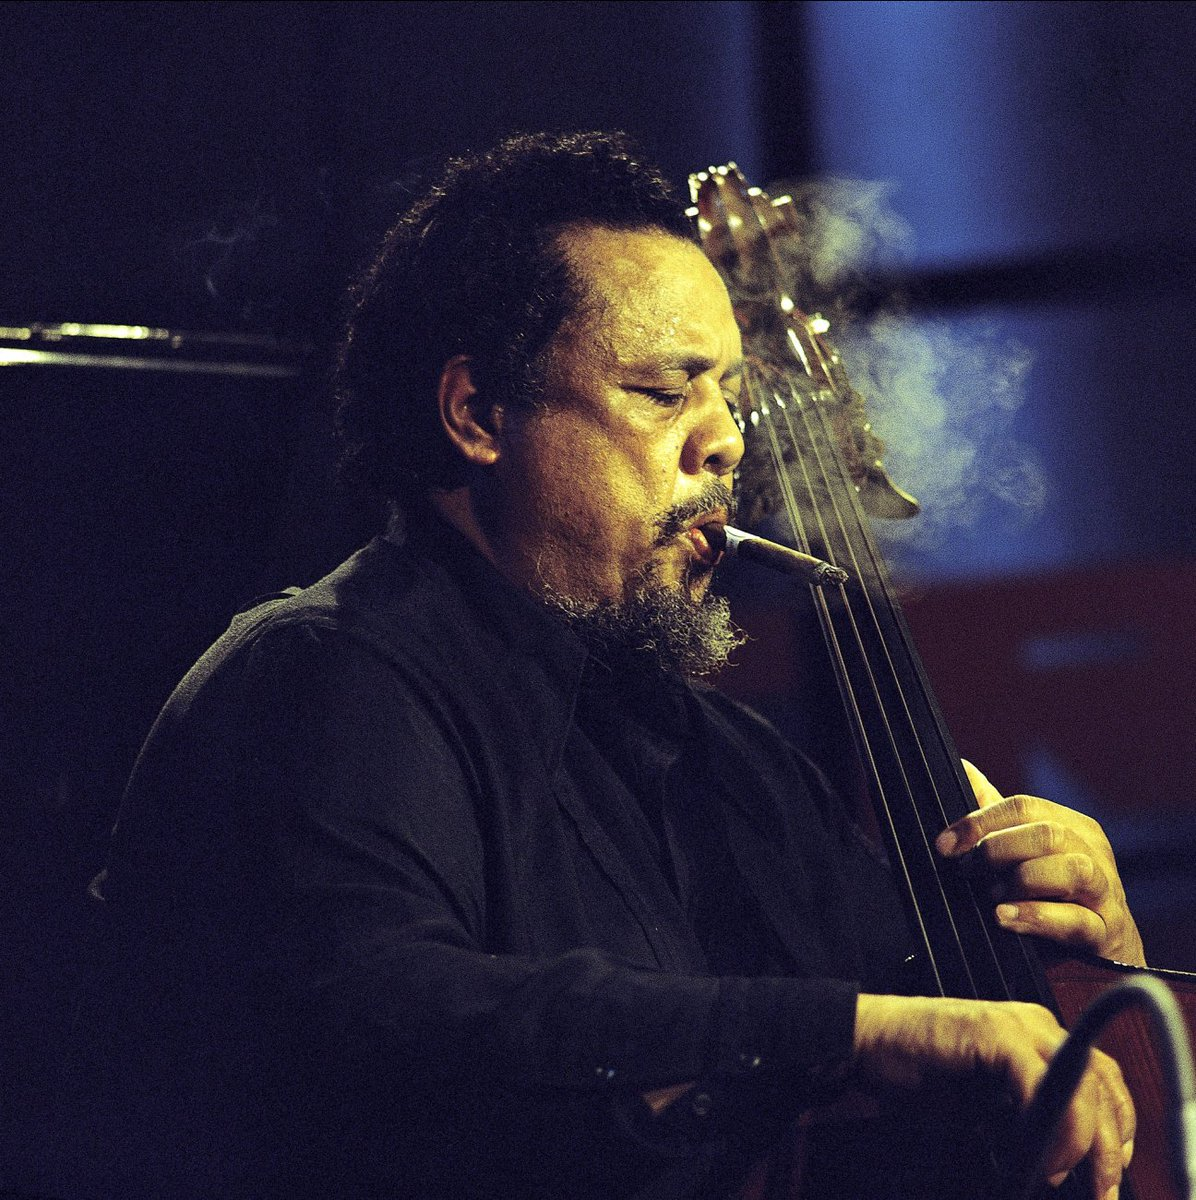 Afropop remembers jazz bass giants Charles Mingus and Paul Chambers who were both born today. https://t.co/PKPZH0eaBS